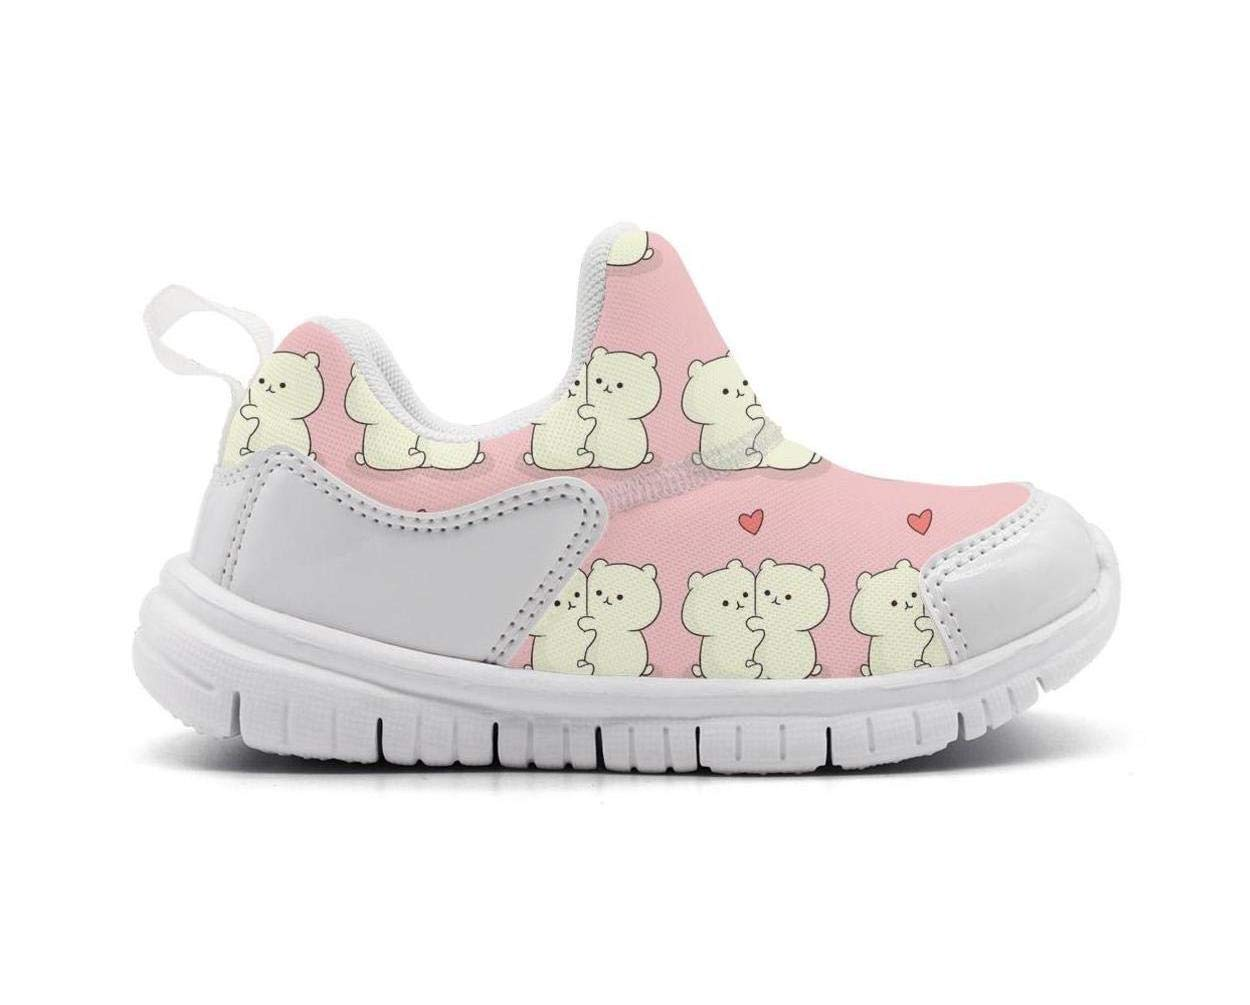 ONEYUAN Children Love Cute Baby Bear Kid Casual Lightweight Sport Shoes Sneakers Walking Athletic Shoes